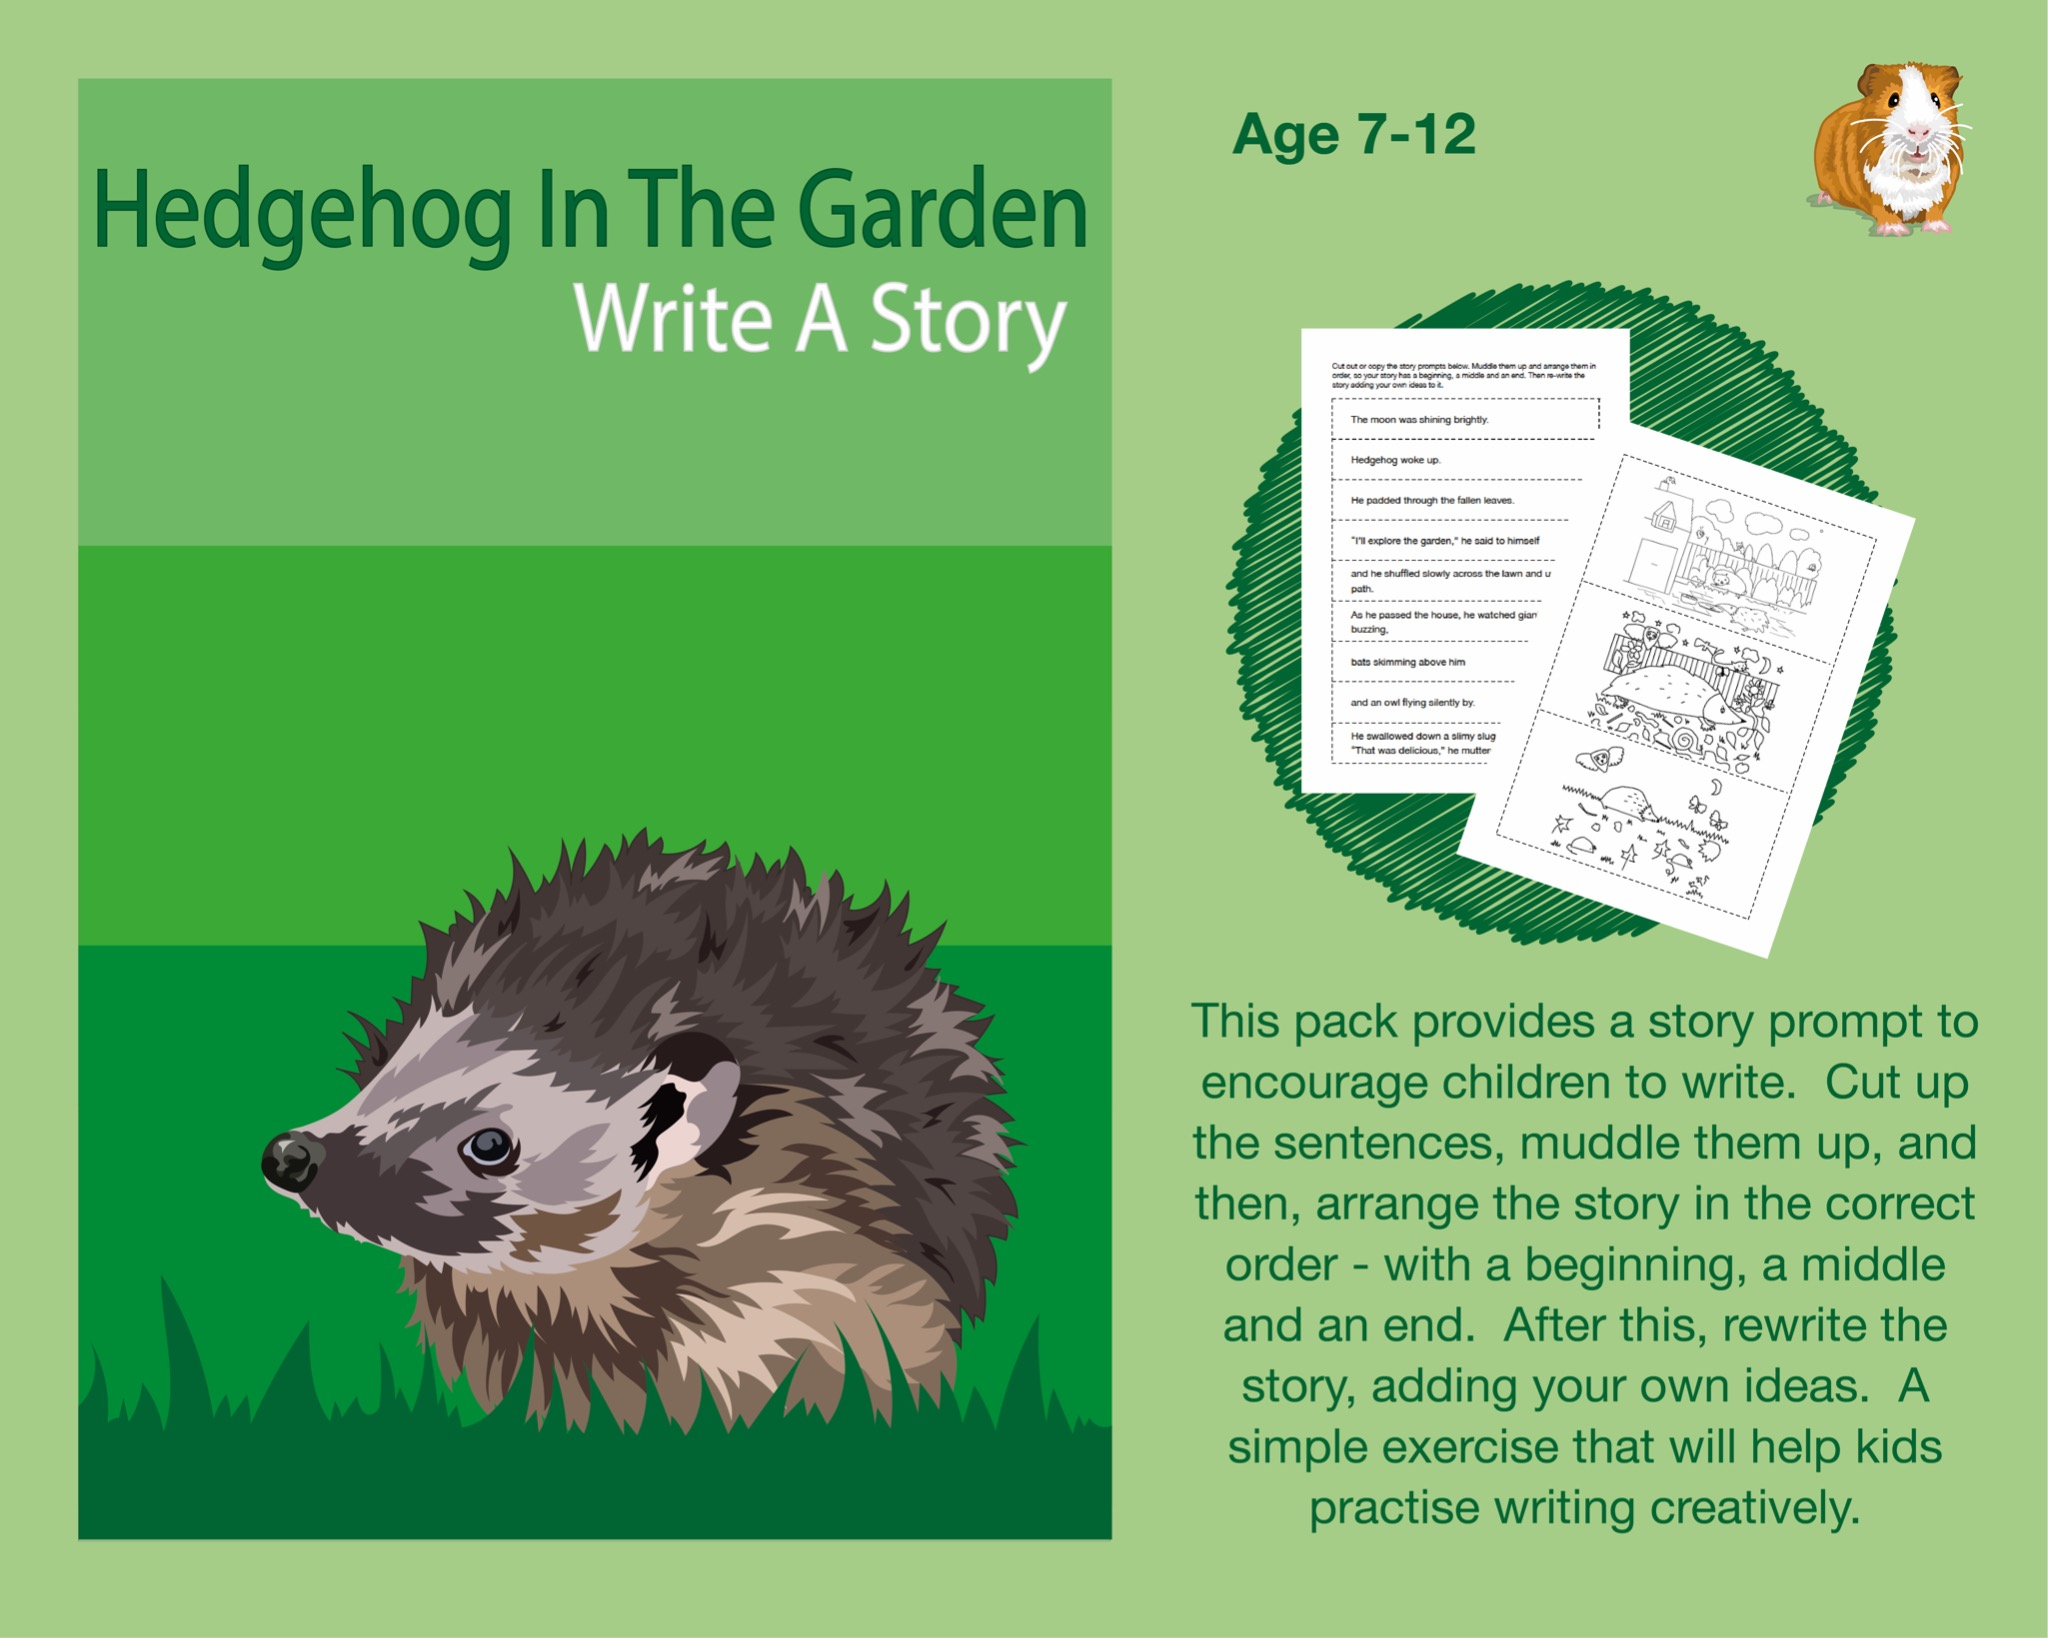 Cut Out And Write A Story Called 'Hedgehog In The Garden' (7-12 years)